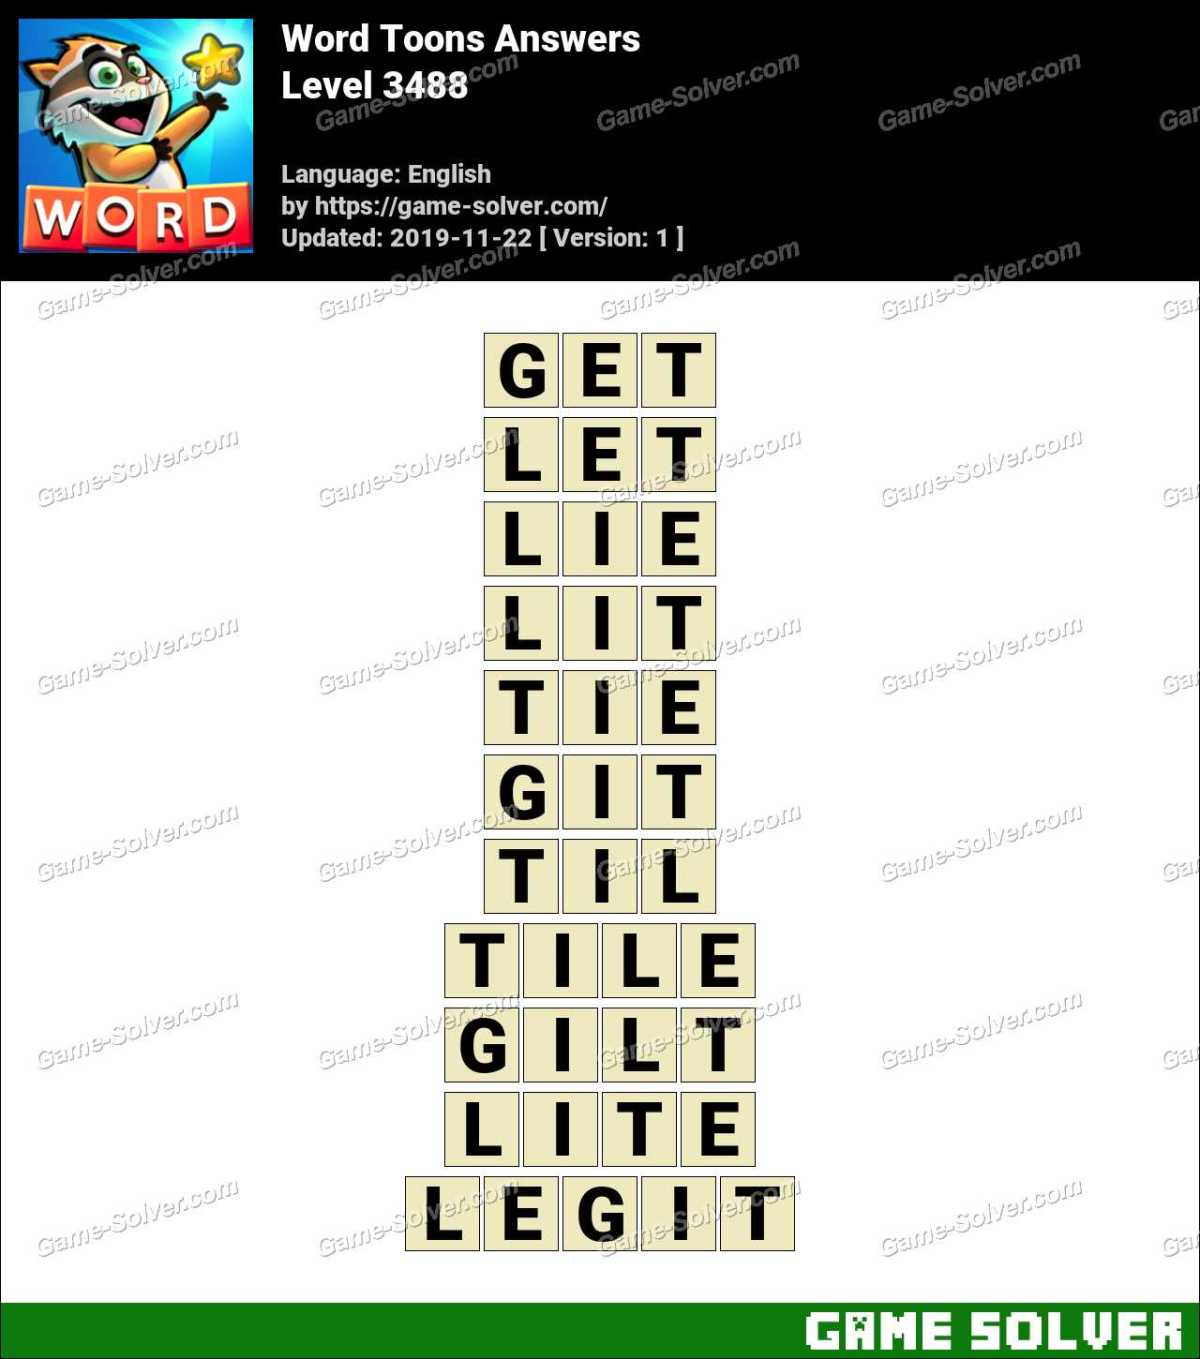 Word Toons Level 3488 Answers